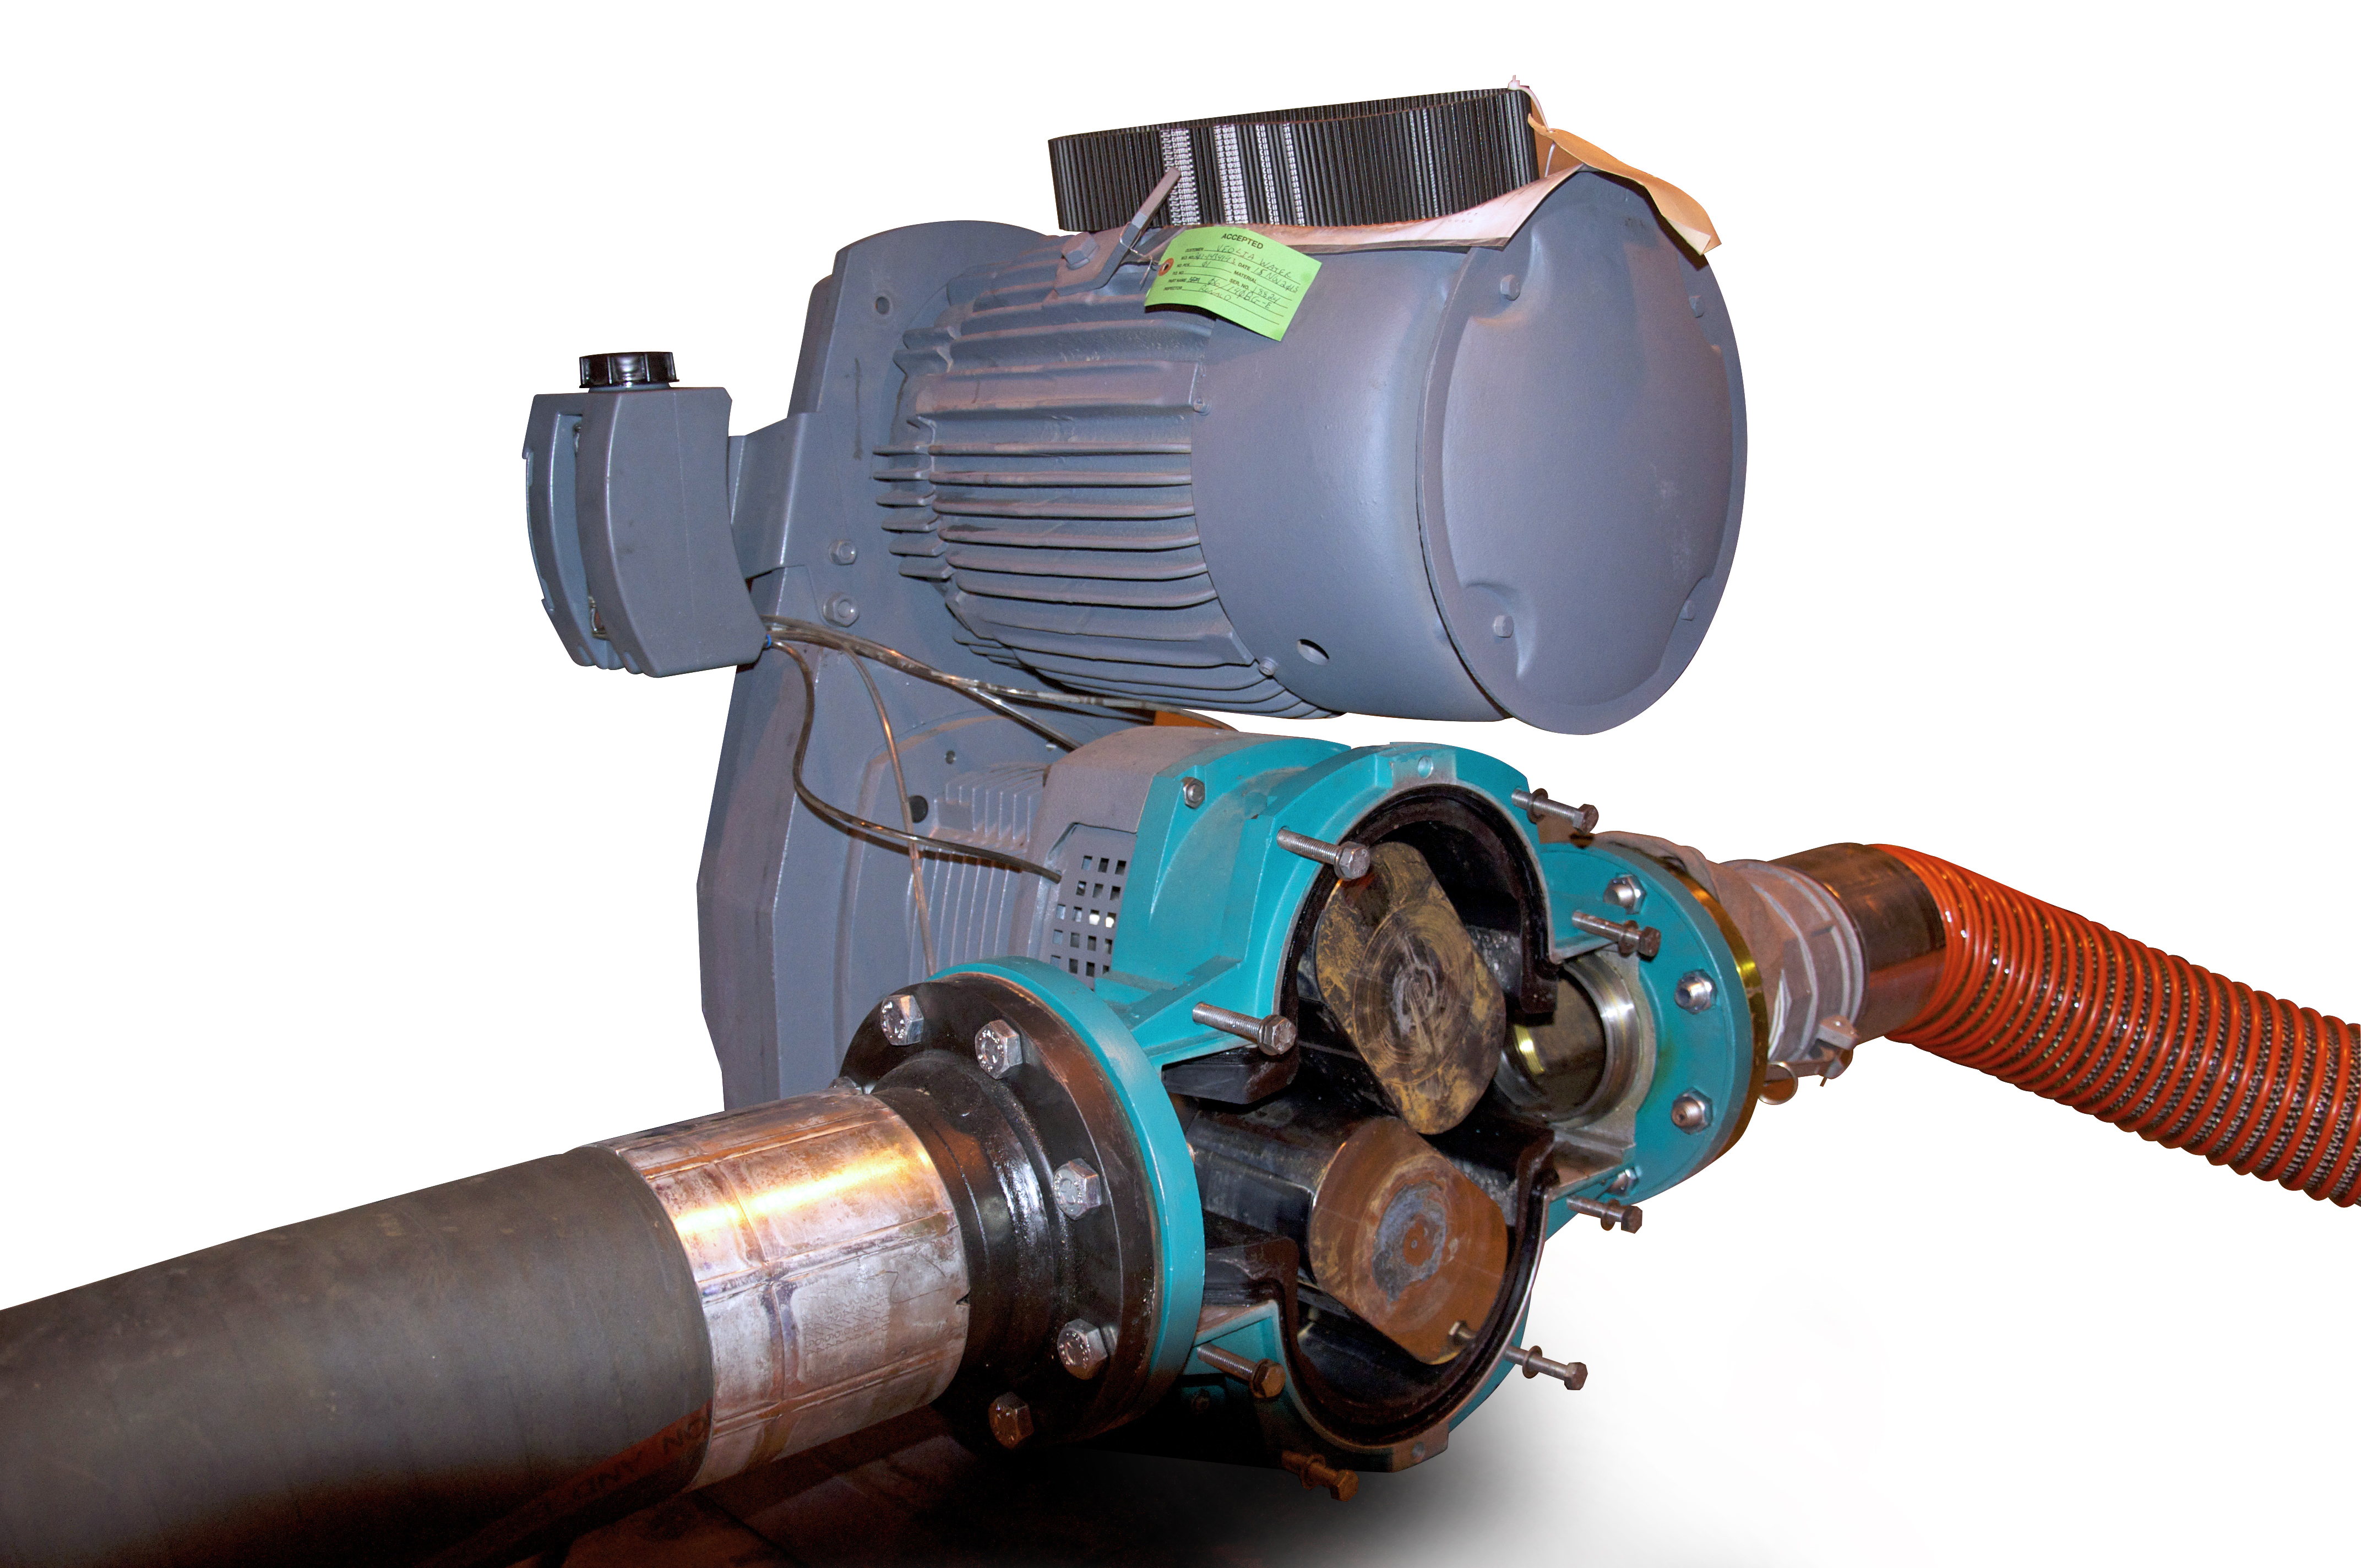 Oilless rotary vane vacuum pumps are similar to other vane pumps but feature unique benefitsOilless rotary vane vacuum pumps are positivedisplacement pumps that feature sliding vanes placed in a rotor rotating within a cavity